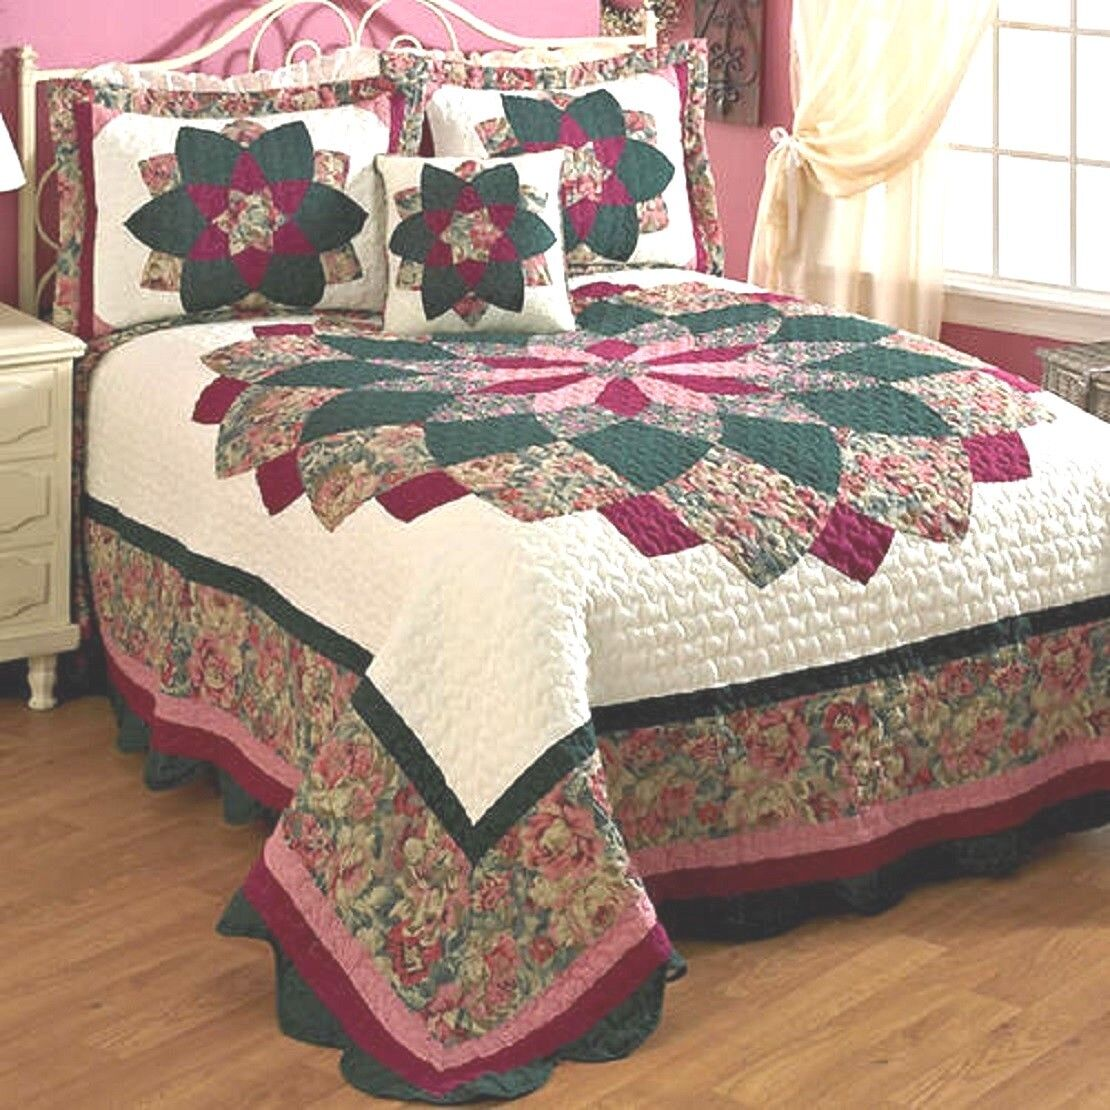 Peacock Quilted Bedspread Woven Cotton/Polyester with Polyes